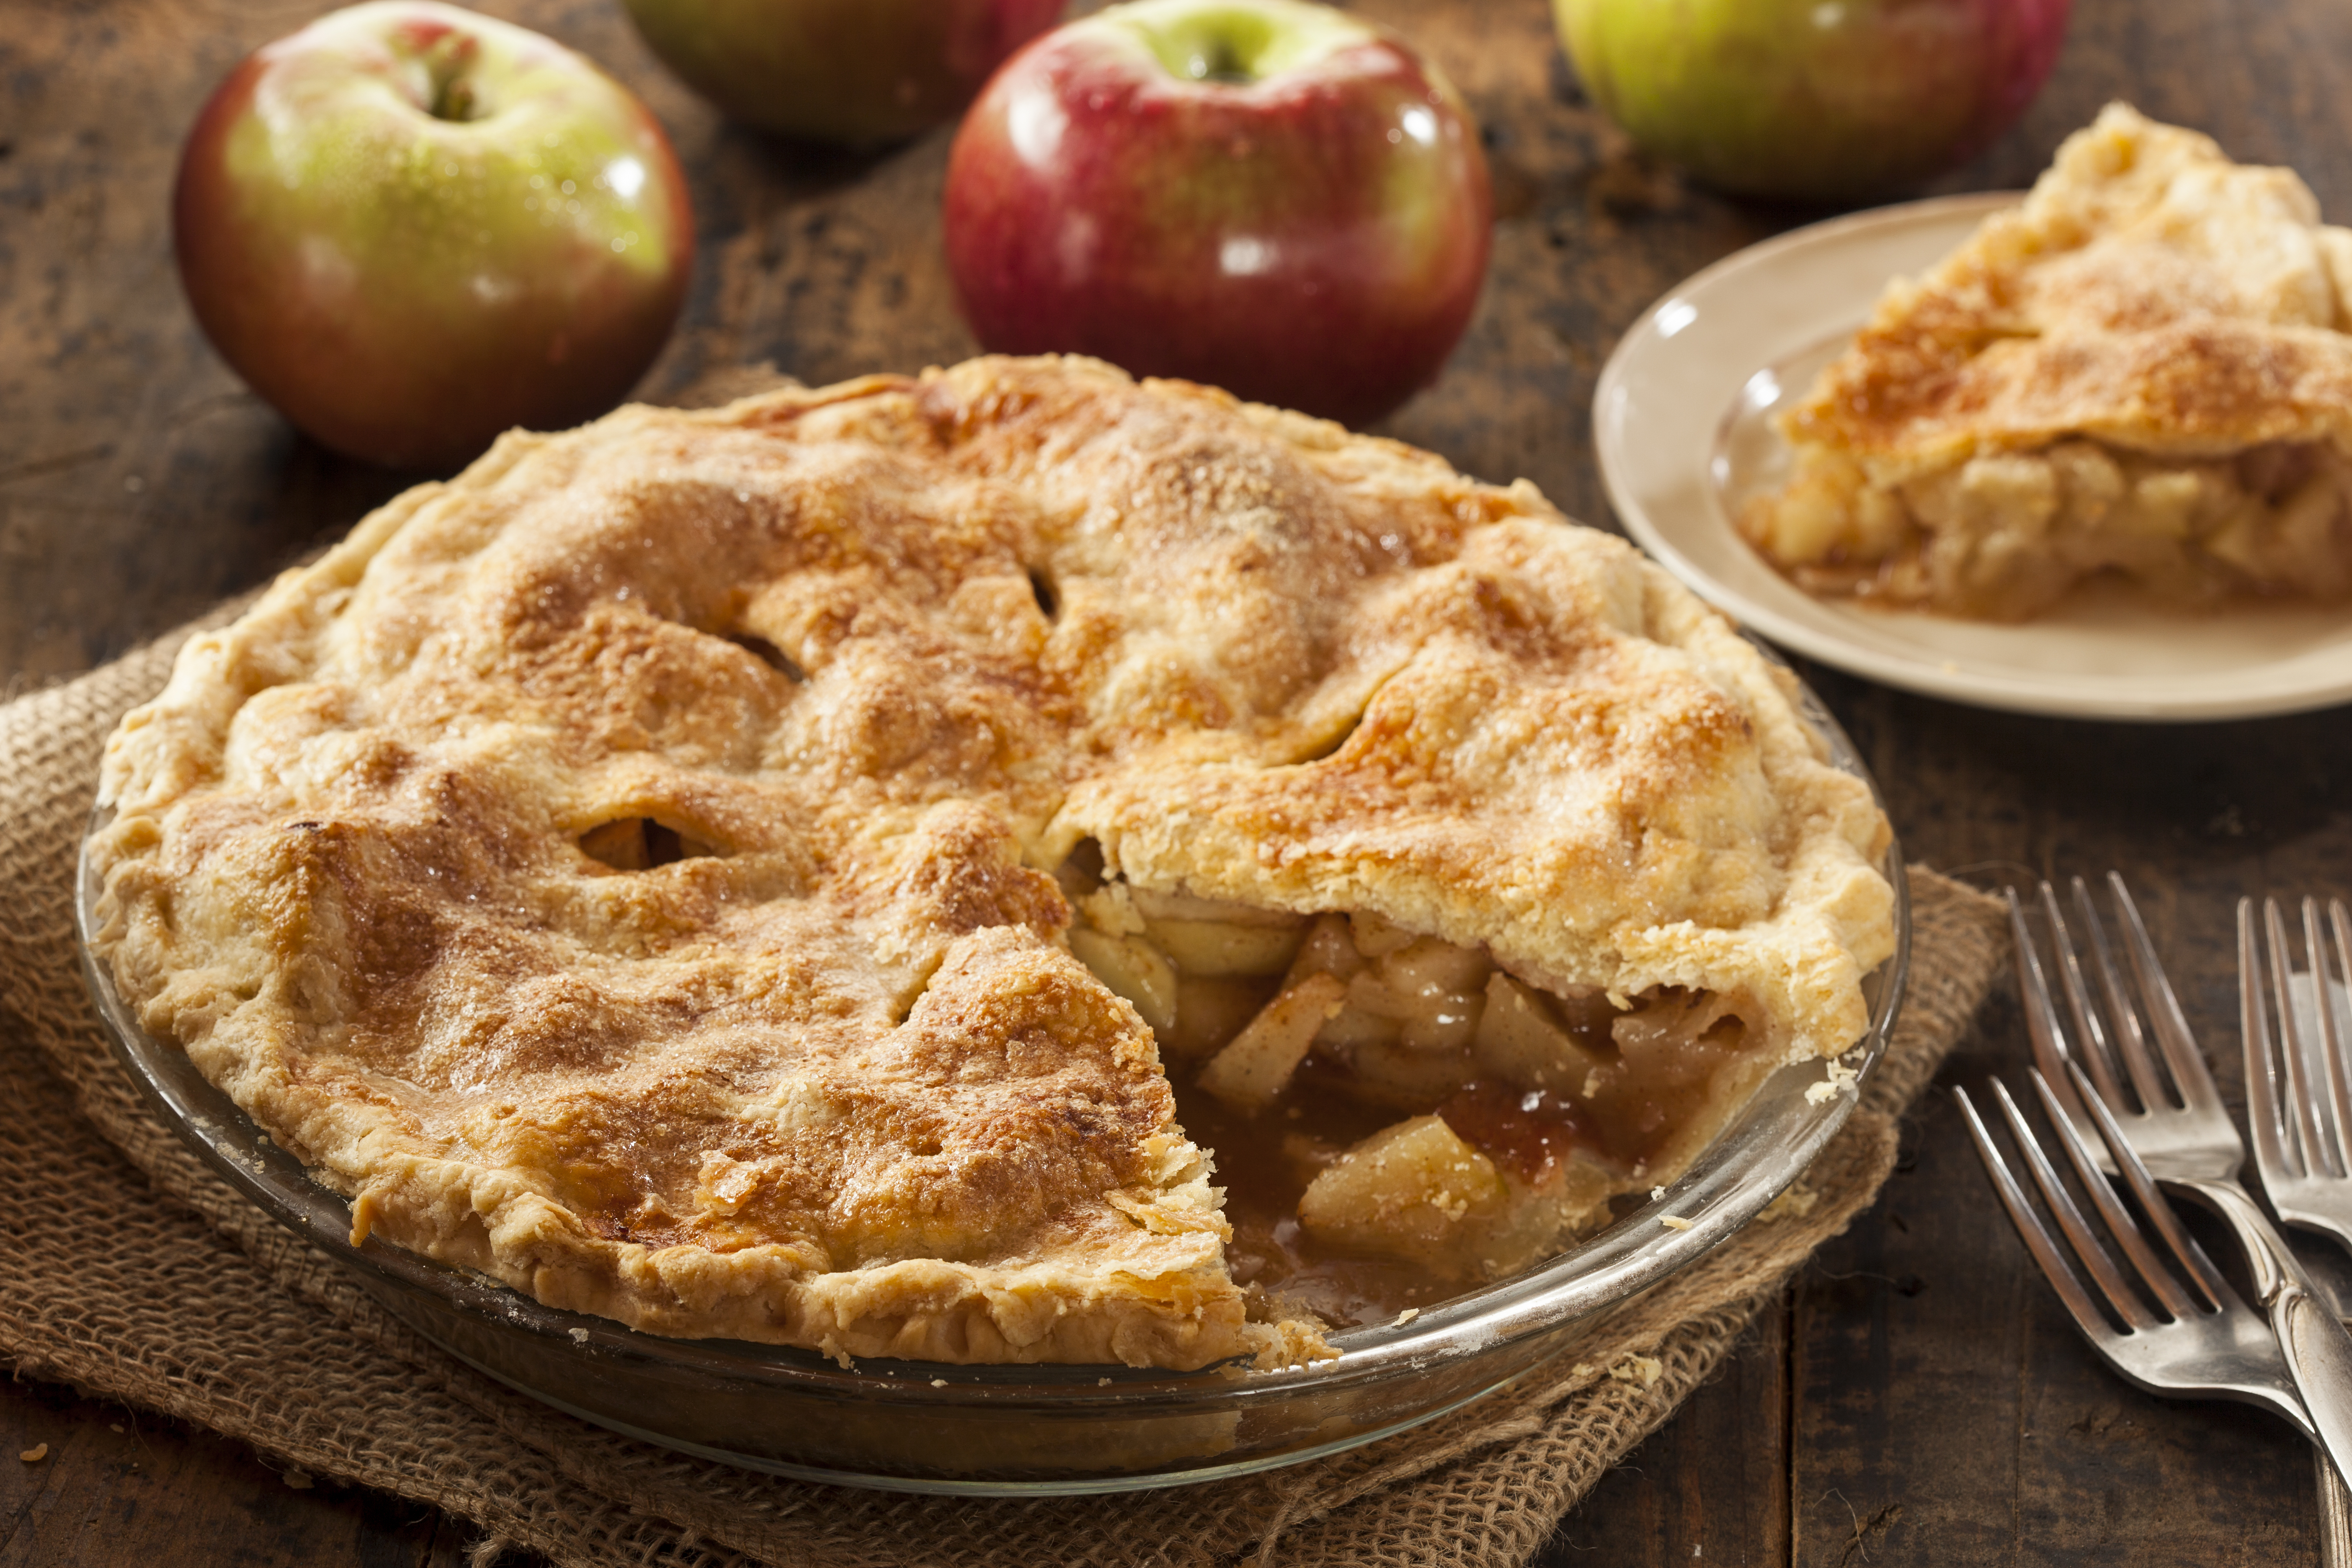 In this stock photograph, an apple pie sits on a table with a slice cut out of it; the slice is on a small white plate in the background. Several forks are on the table, as are apples.